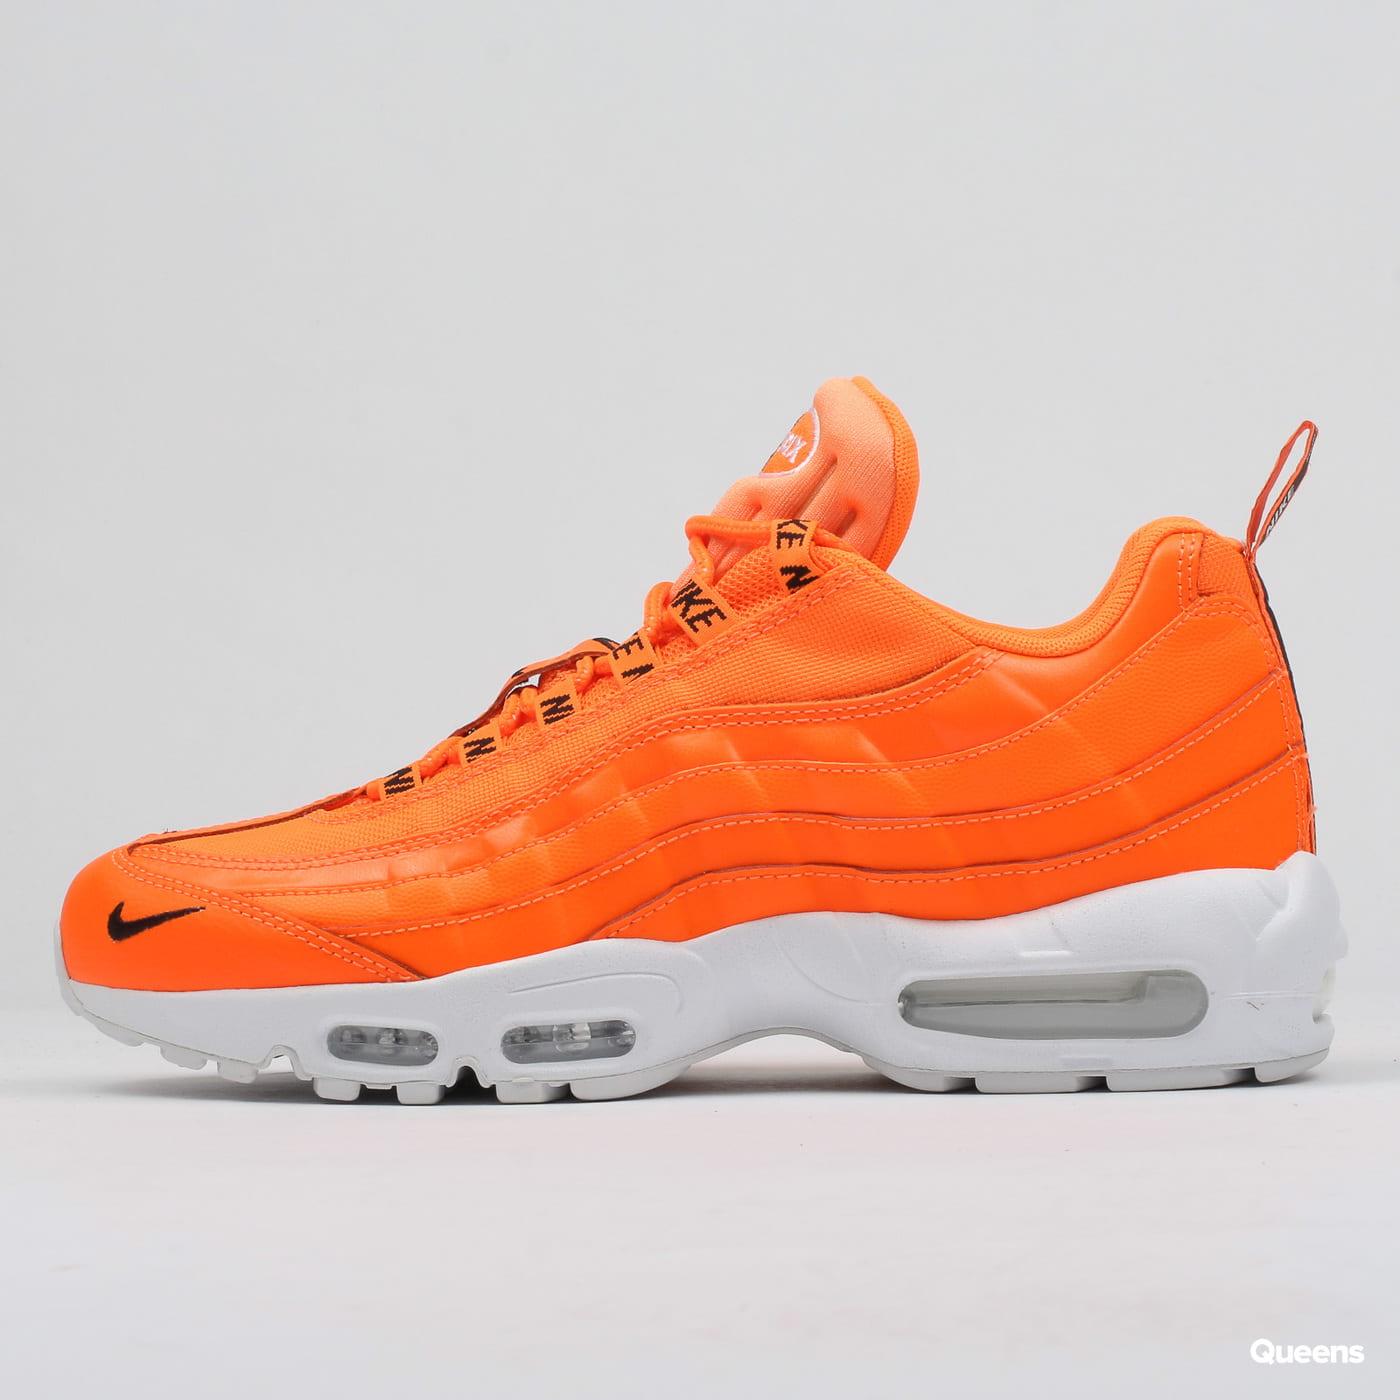 sale retailer 83635 cc0bb Zoom in Zoom in Zoom in Zoom in Zoom in. Nike Air Max 95 Premium total  orange   black - white